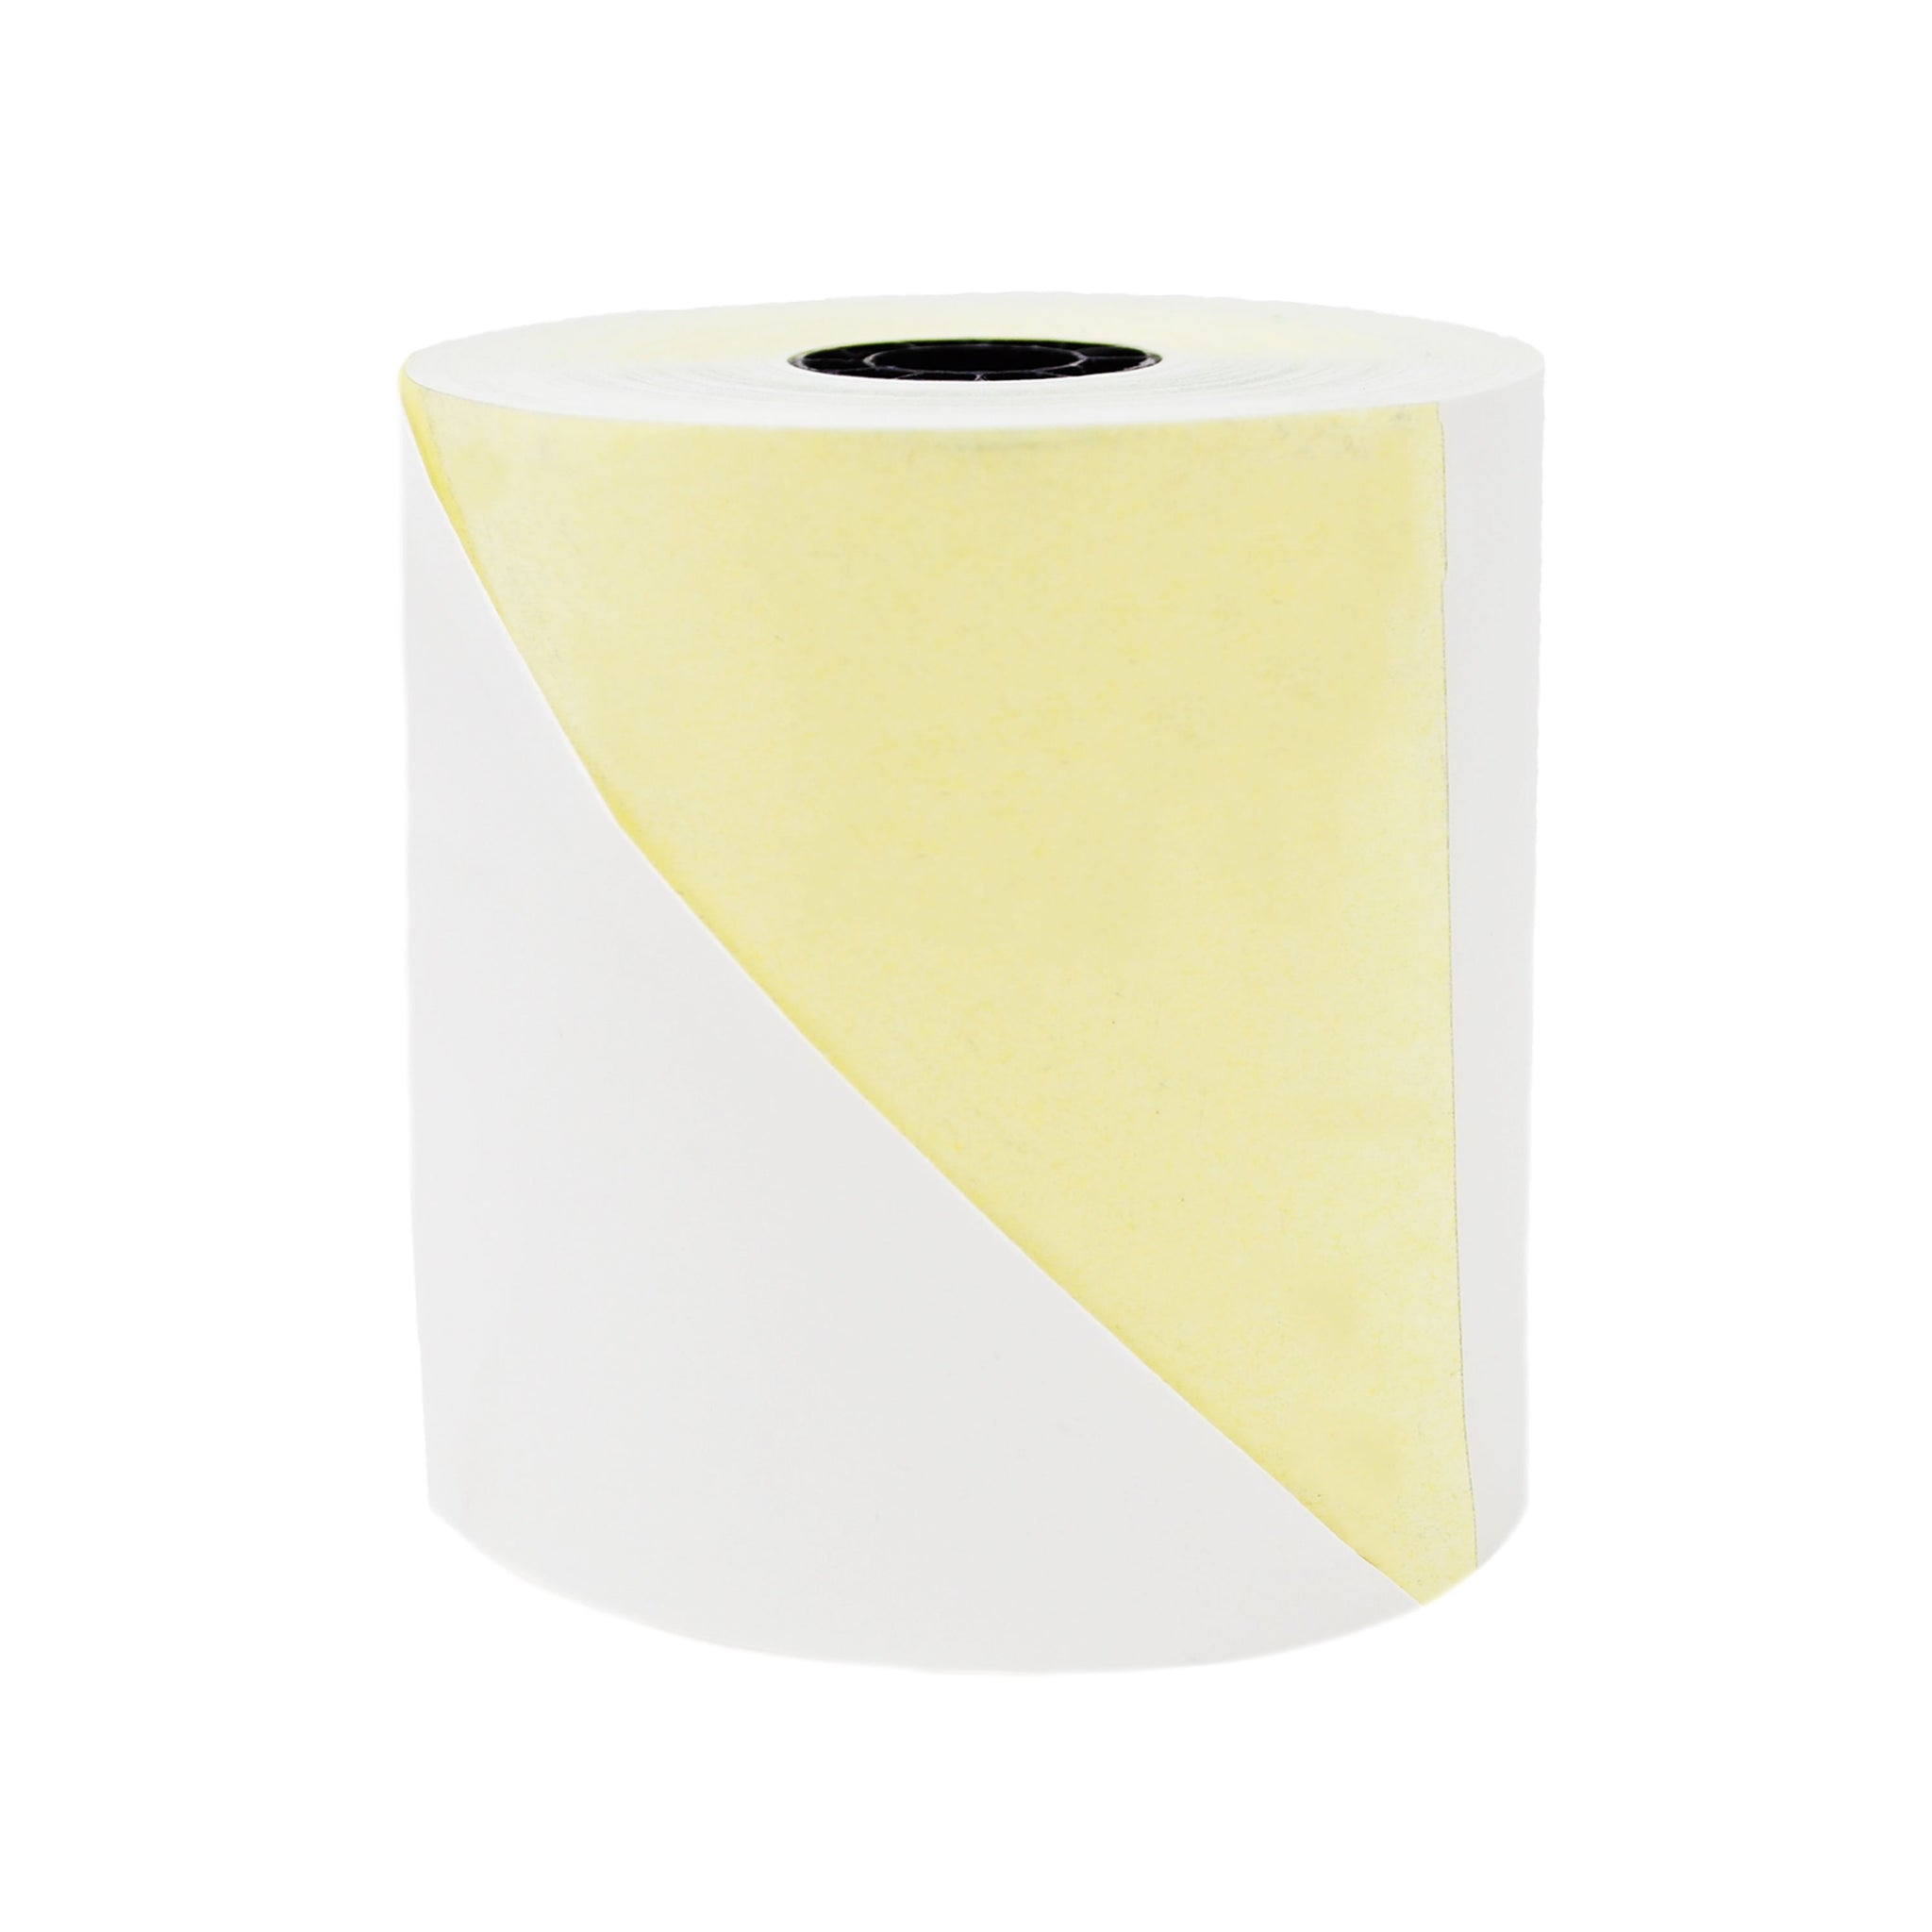 2-ply Carbonless 3.0 x 3.0 inches x 90 feet Carbonless Cash Register Paper Box of 50 Rolls Made in USA From BuyRegisterRolls